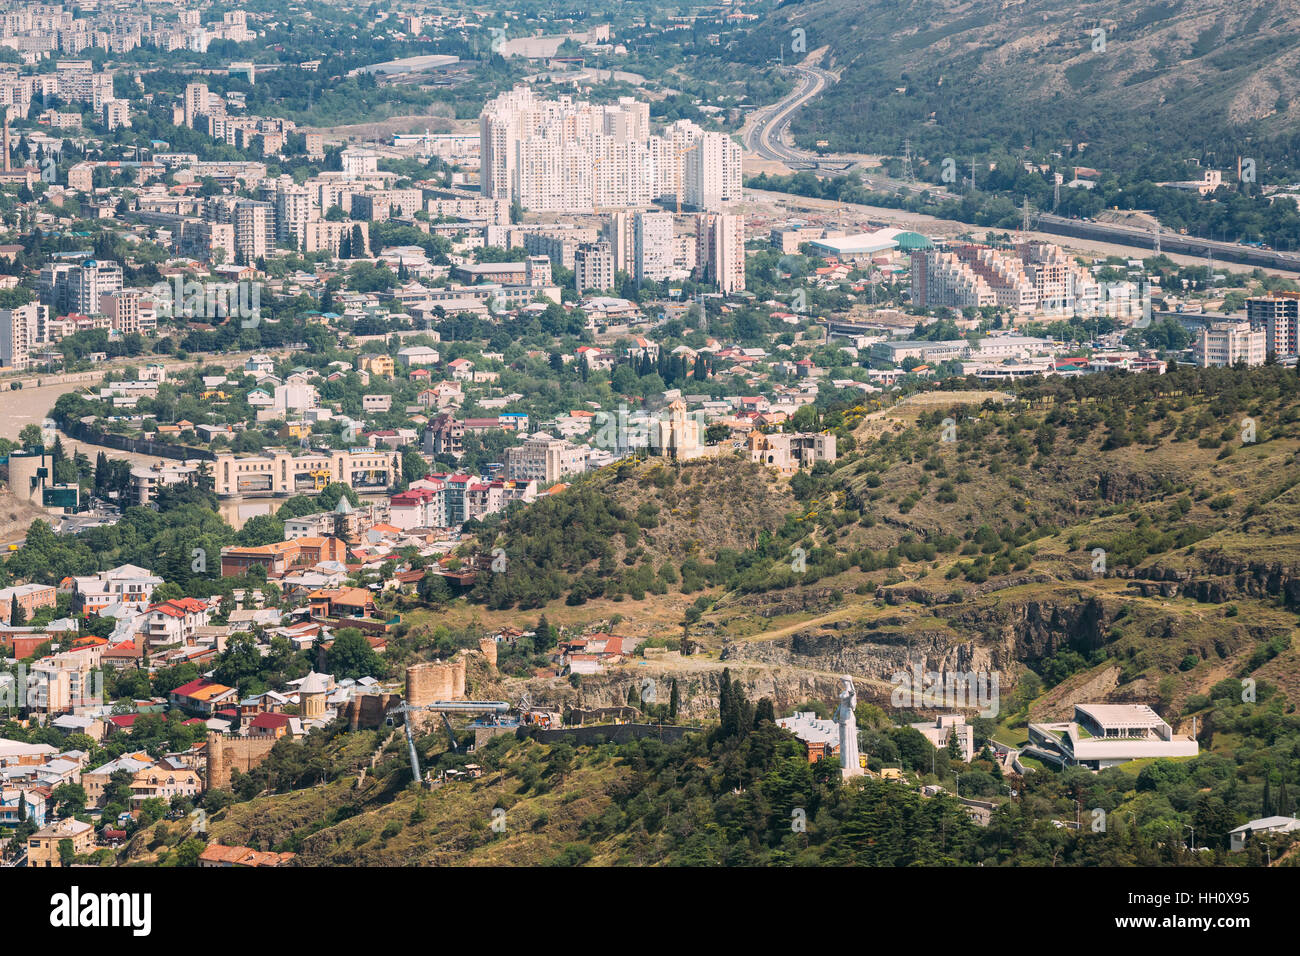 Tbilisi Georgia. Aerial View Of City With Famous Landmarks: Kartlis Deda Monument, Narikala Ancient Fortress And Stock Photo